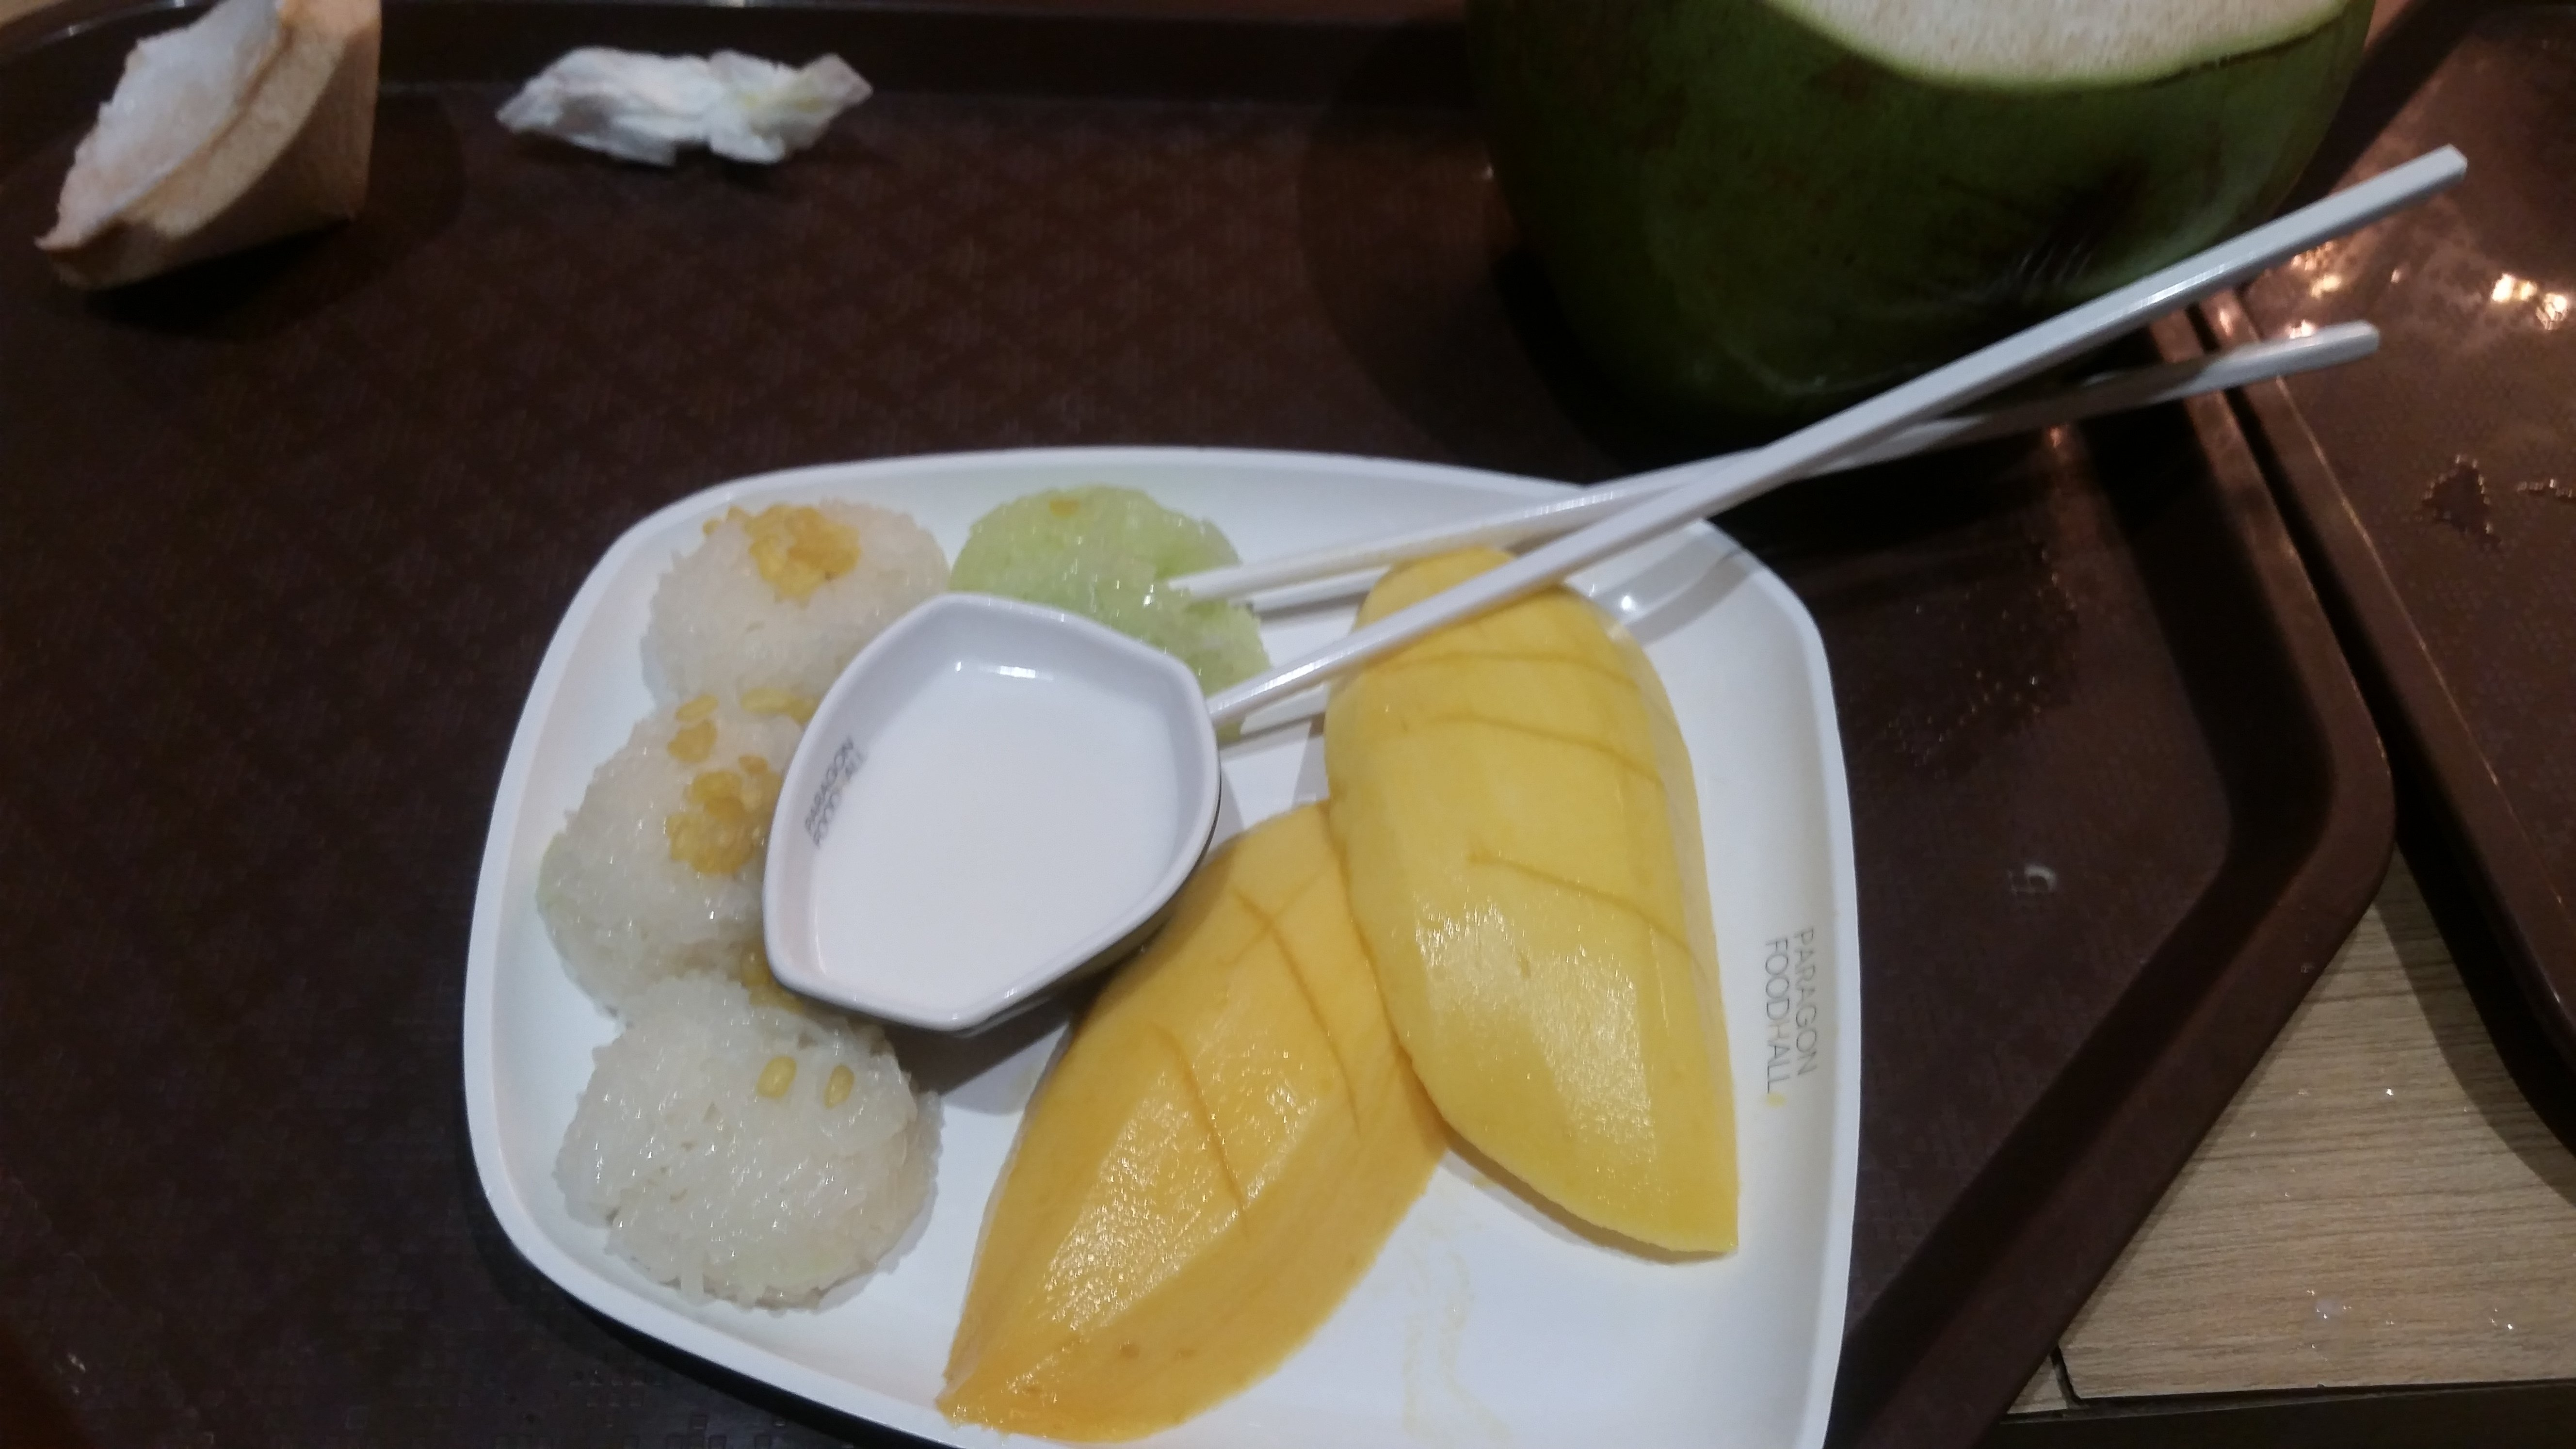 Mango sticky rice, an incredibly tourist-y meal. Served with Coconut Milk.